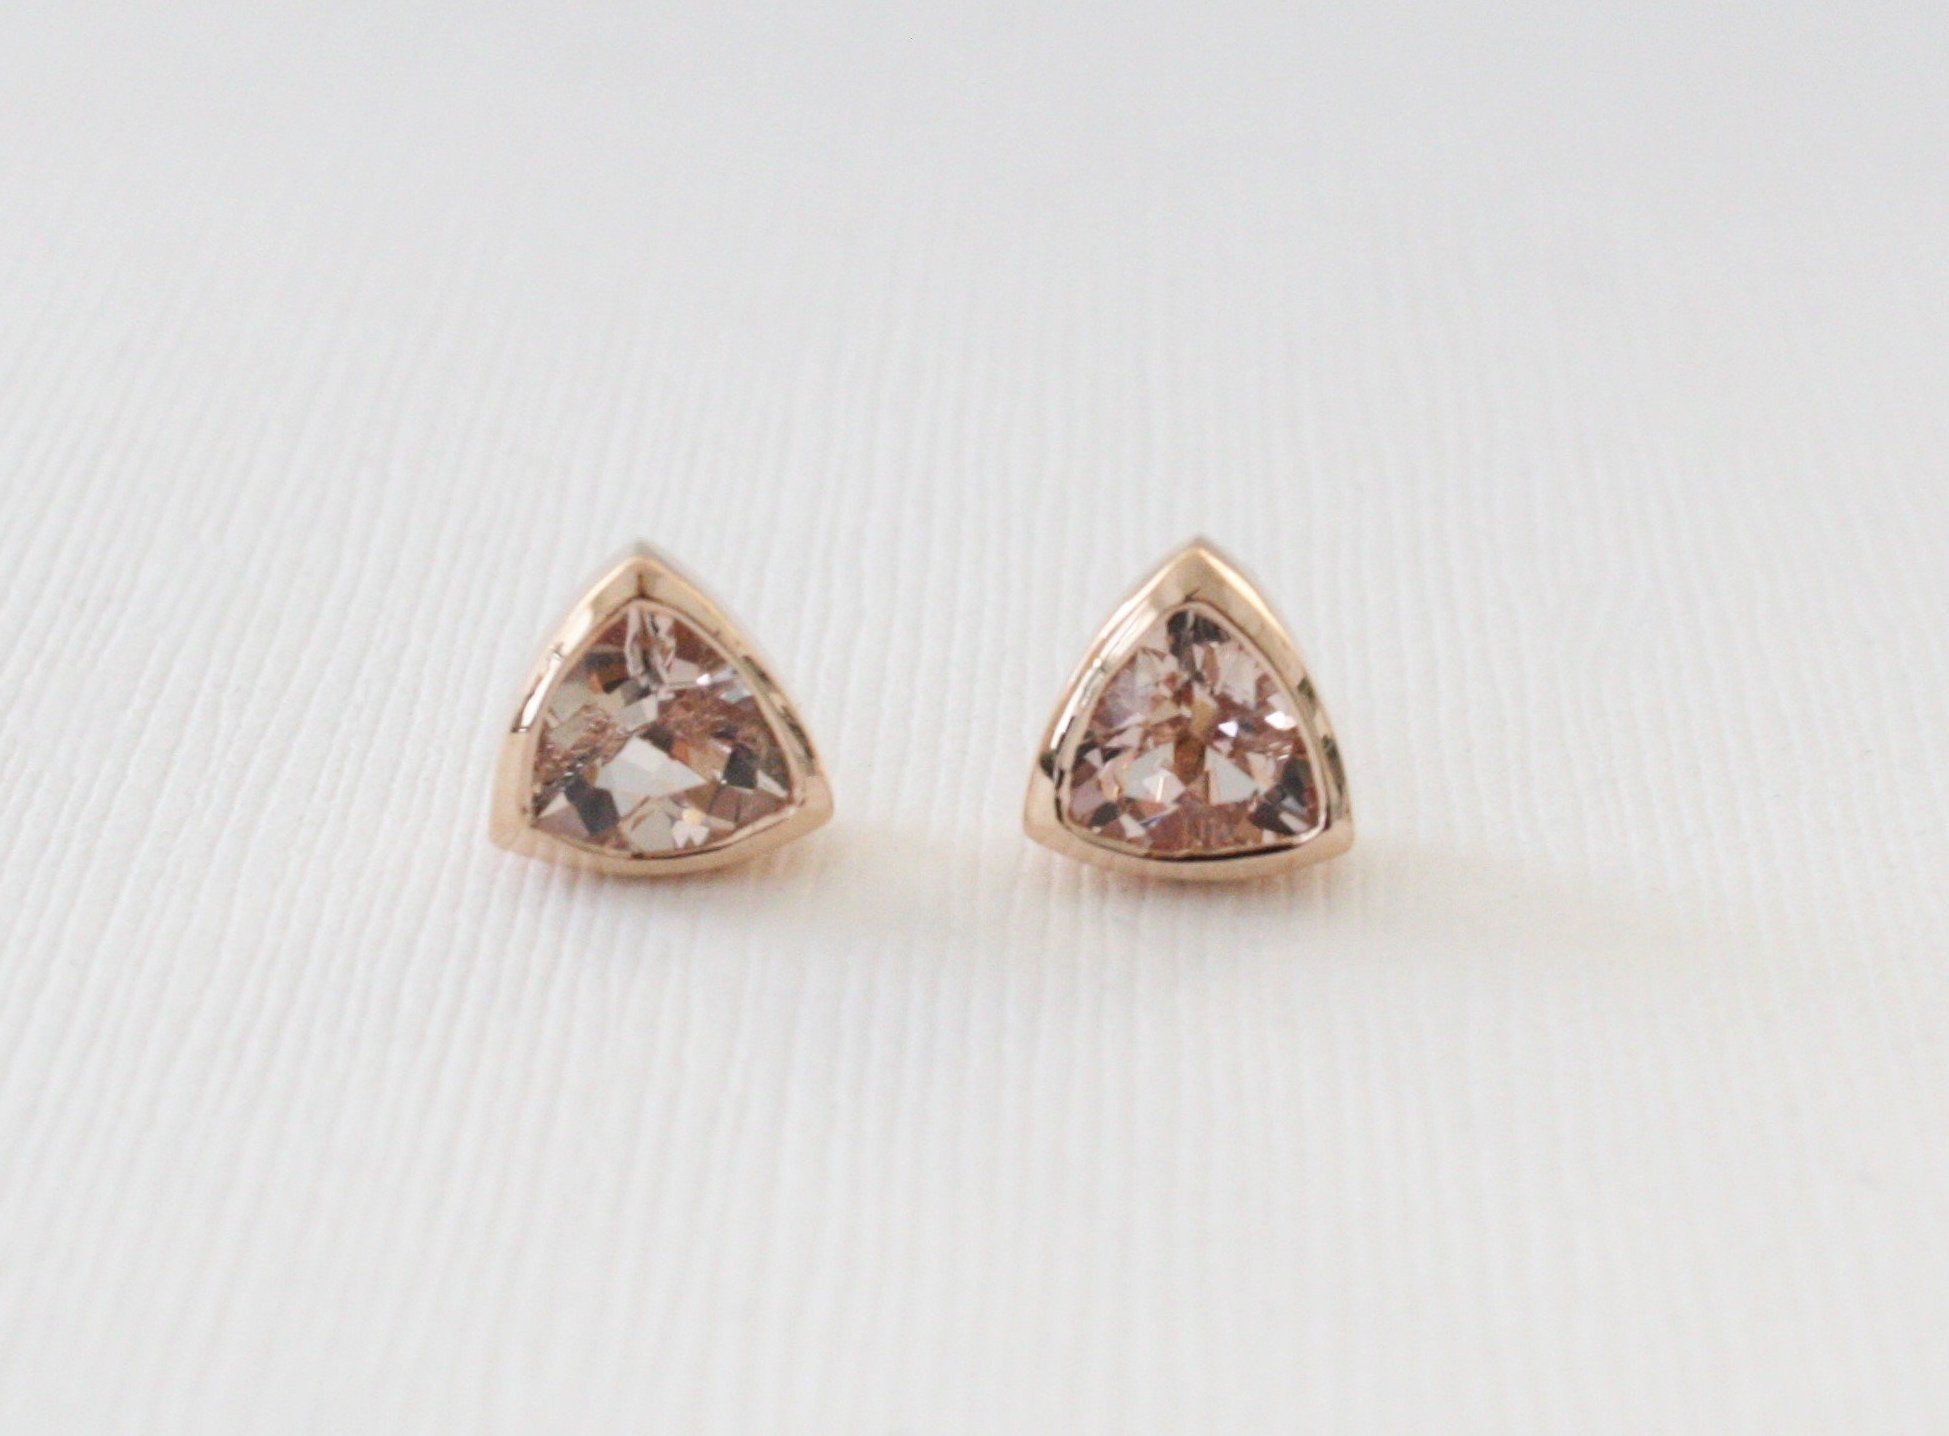 diamonds earrings simulated round peach man pin created sterling morganite stud lab made champagne silver settings